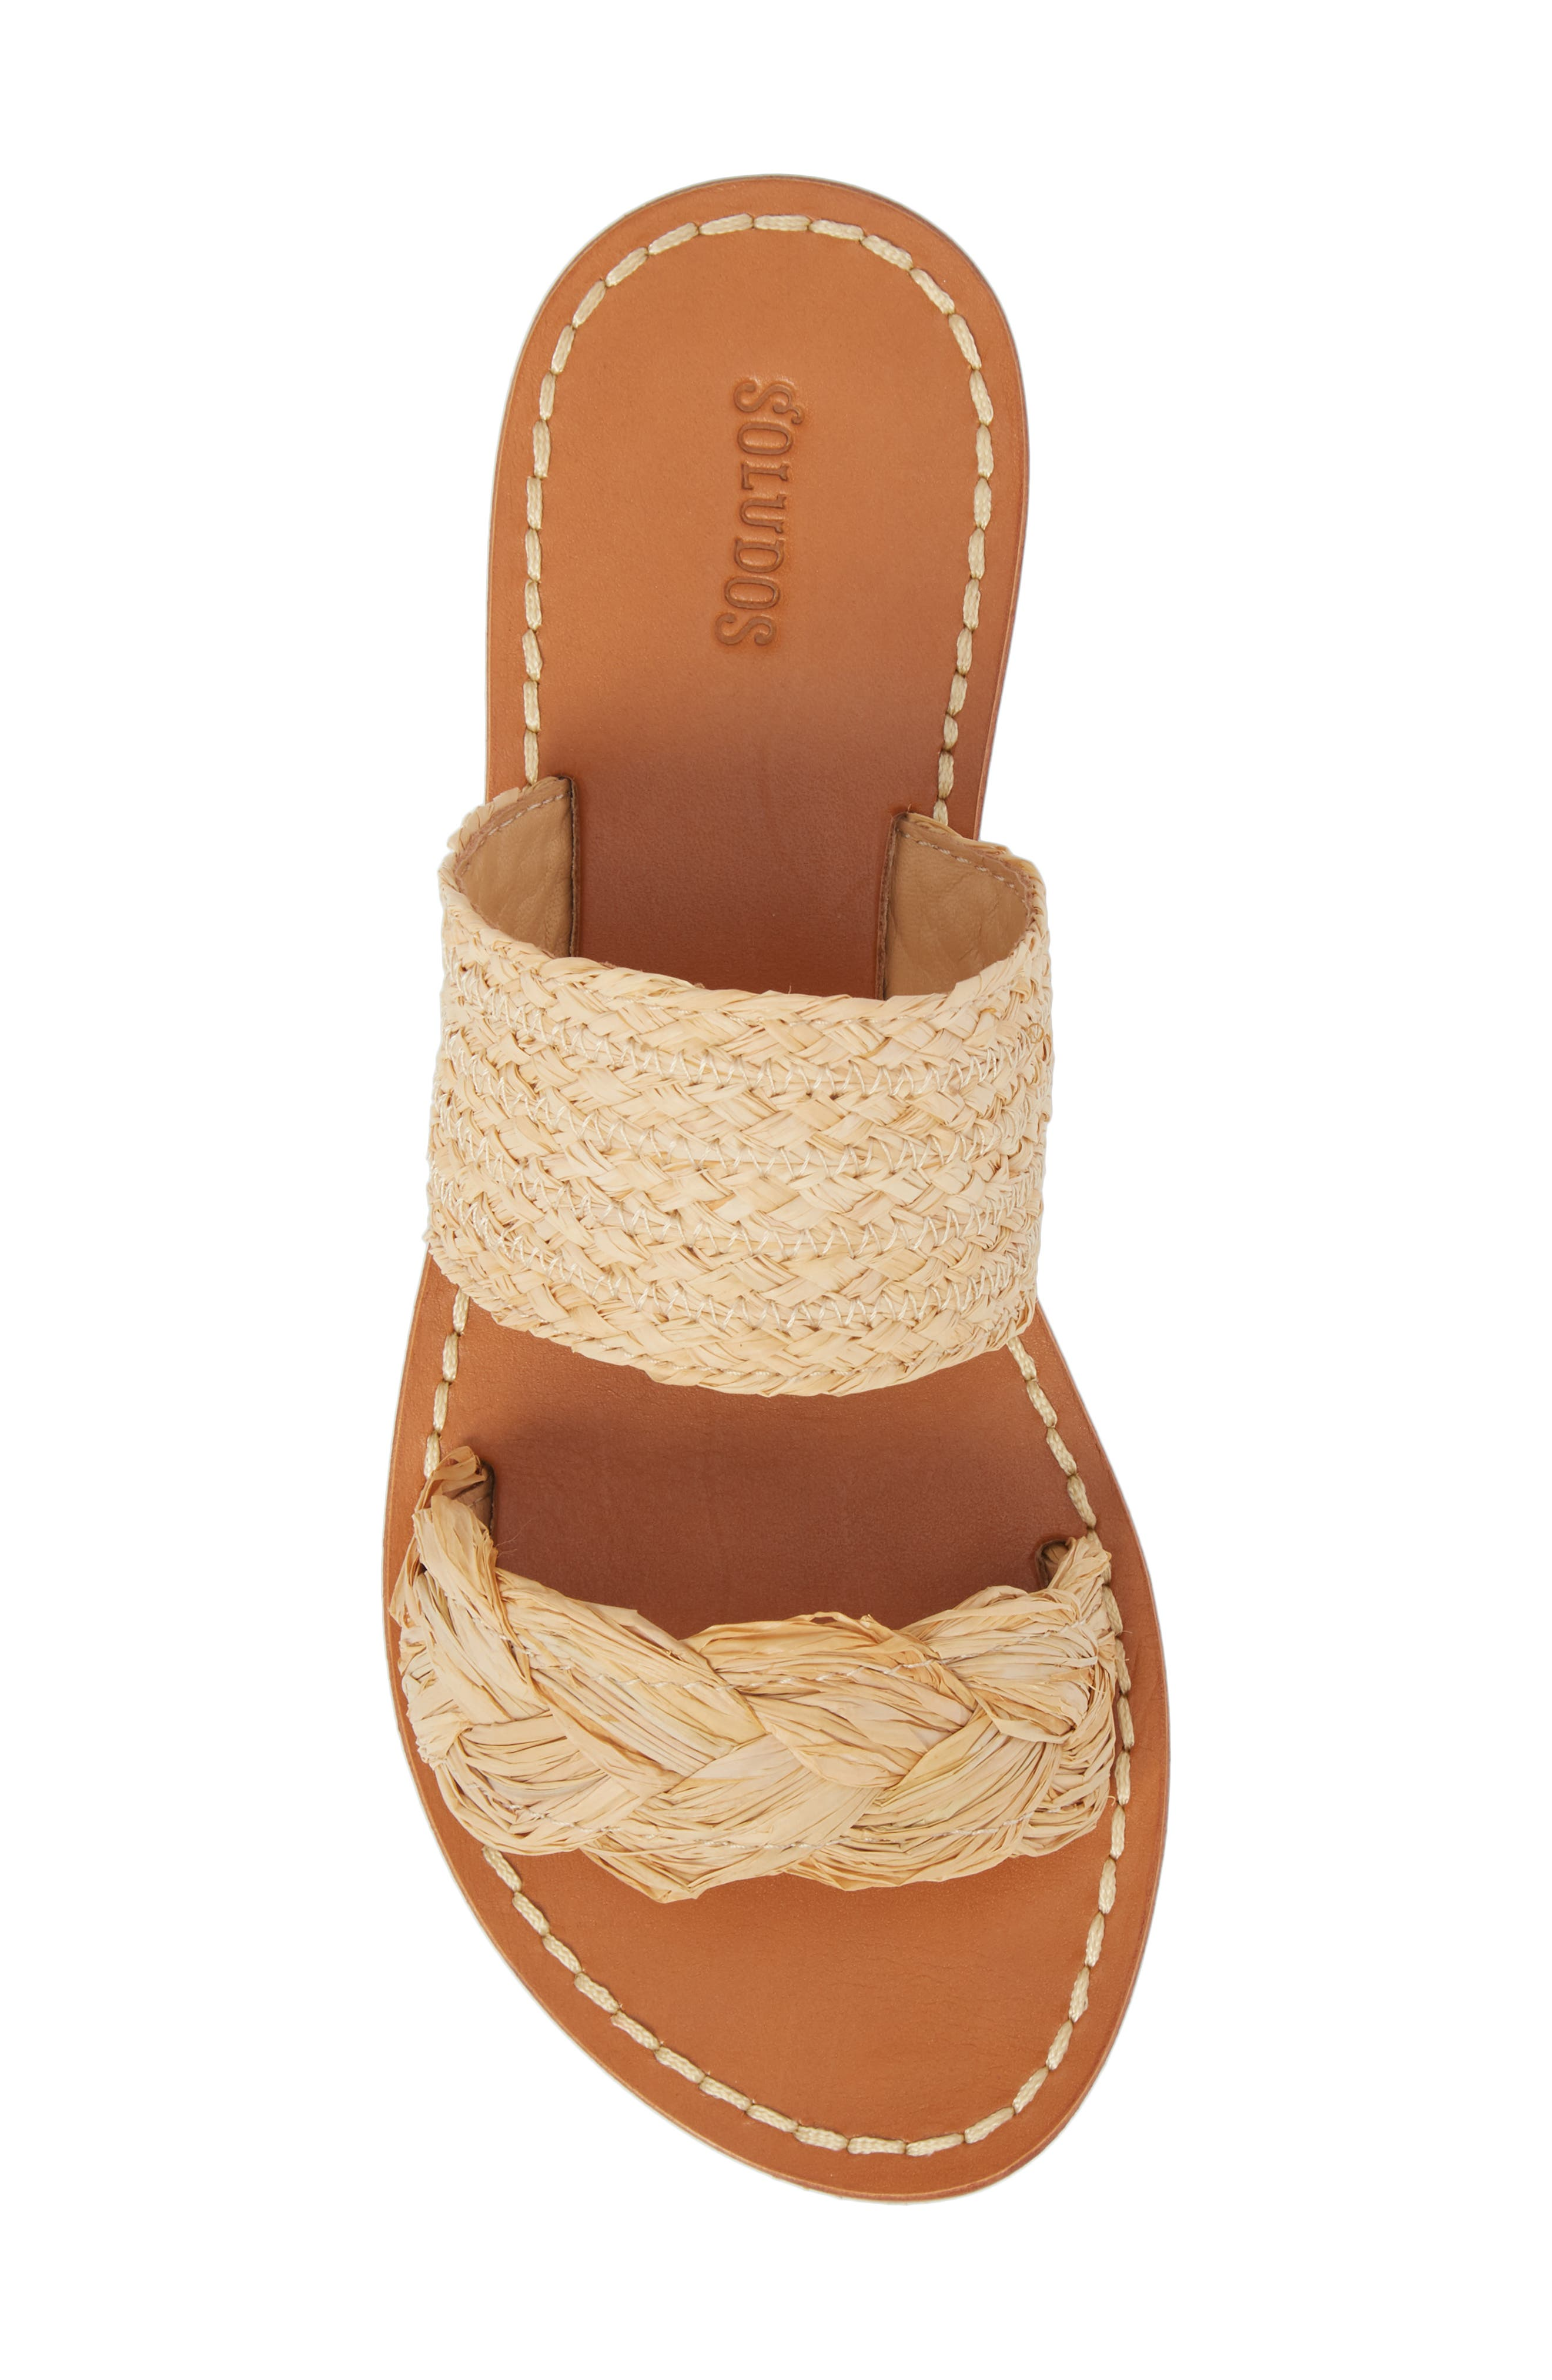 Braided Slide Sandal,                             Alternate thumbnail 5, color,                             Natural Leather